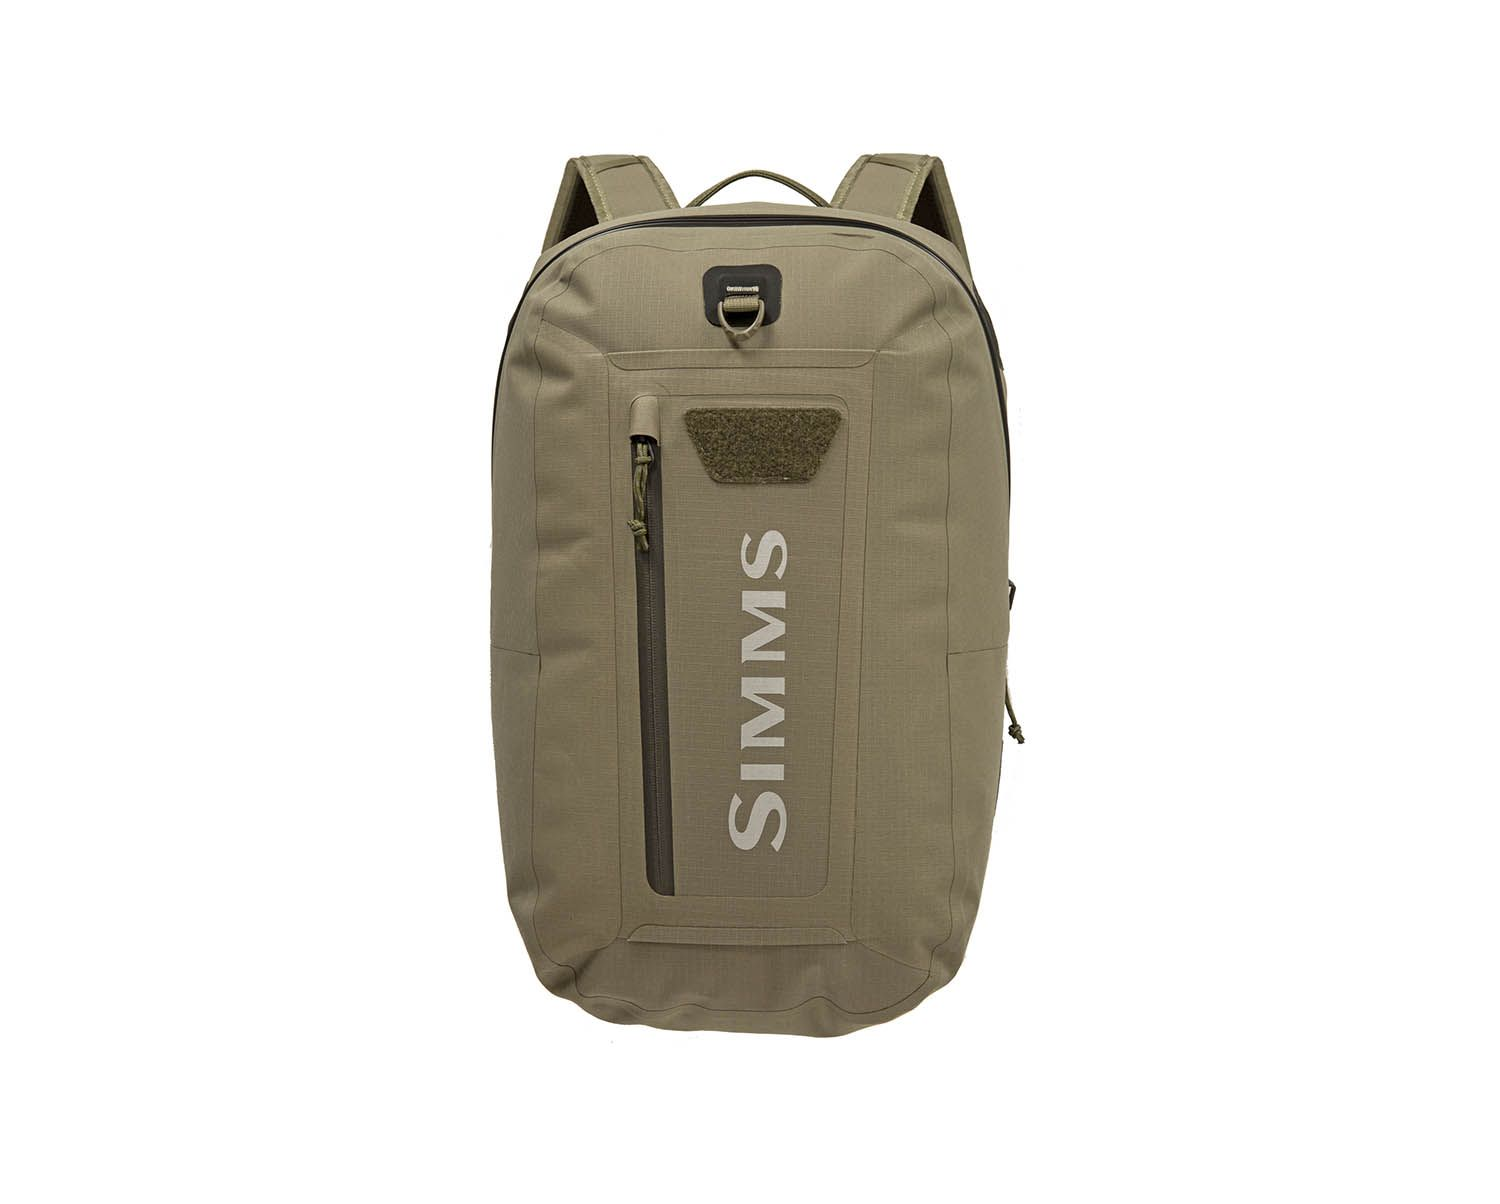 Simms Dry Creek Z Fishing Backpack - 35L